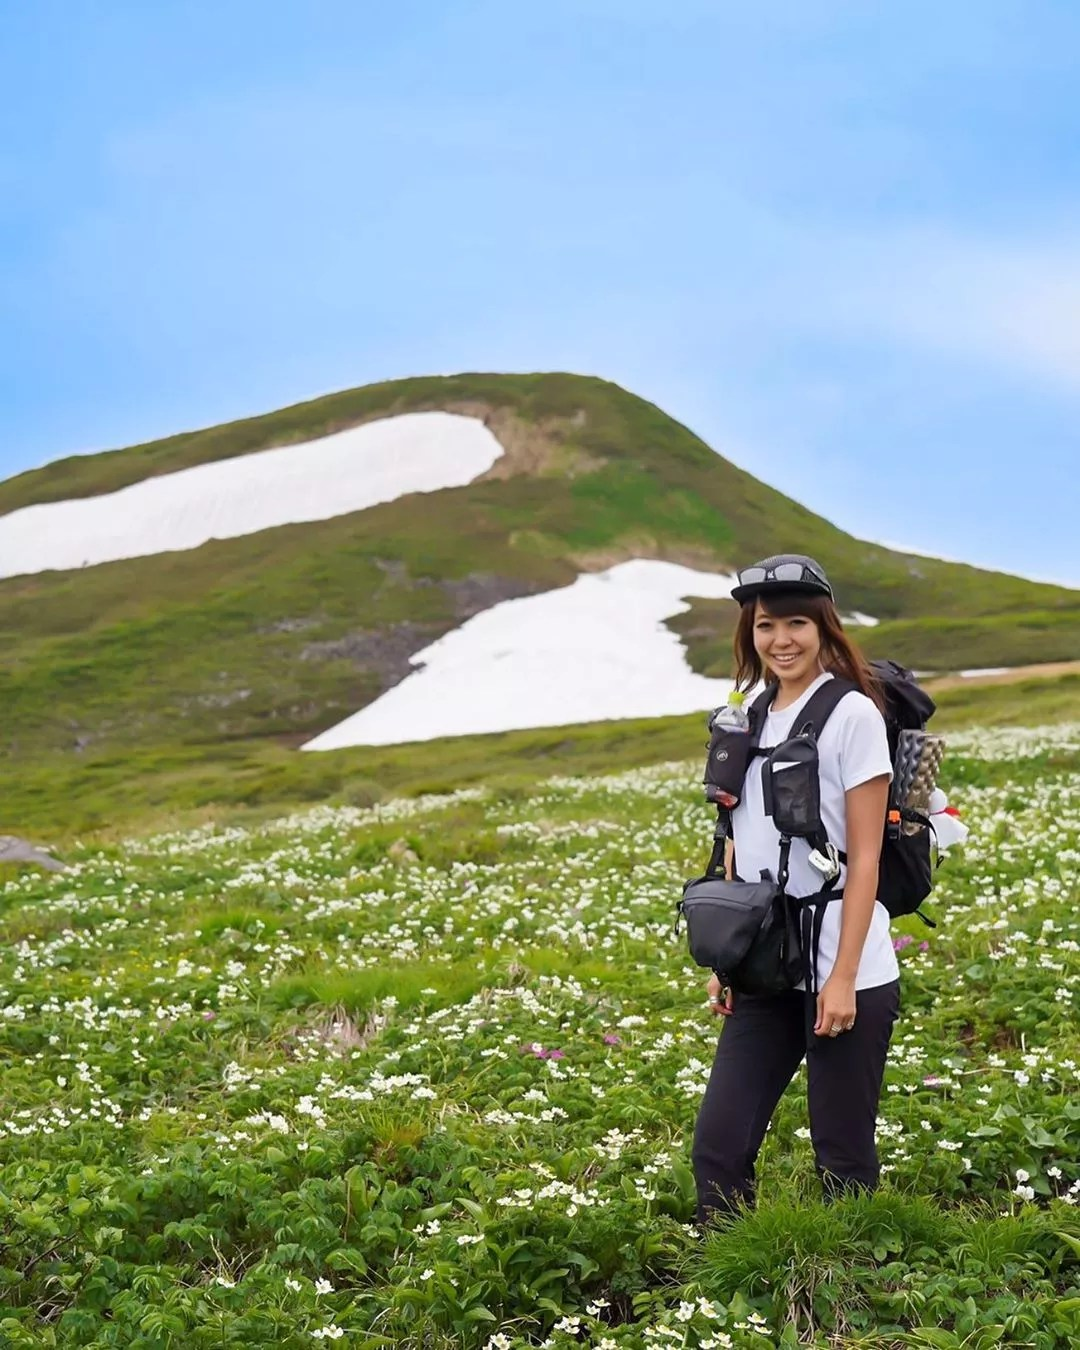 Woman with Backpack and Photography Equipment Hiking Through Green Hills. Photo by Instagram user @yumika0121